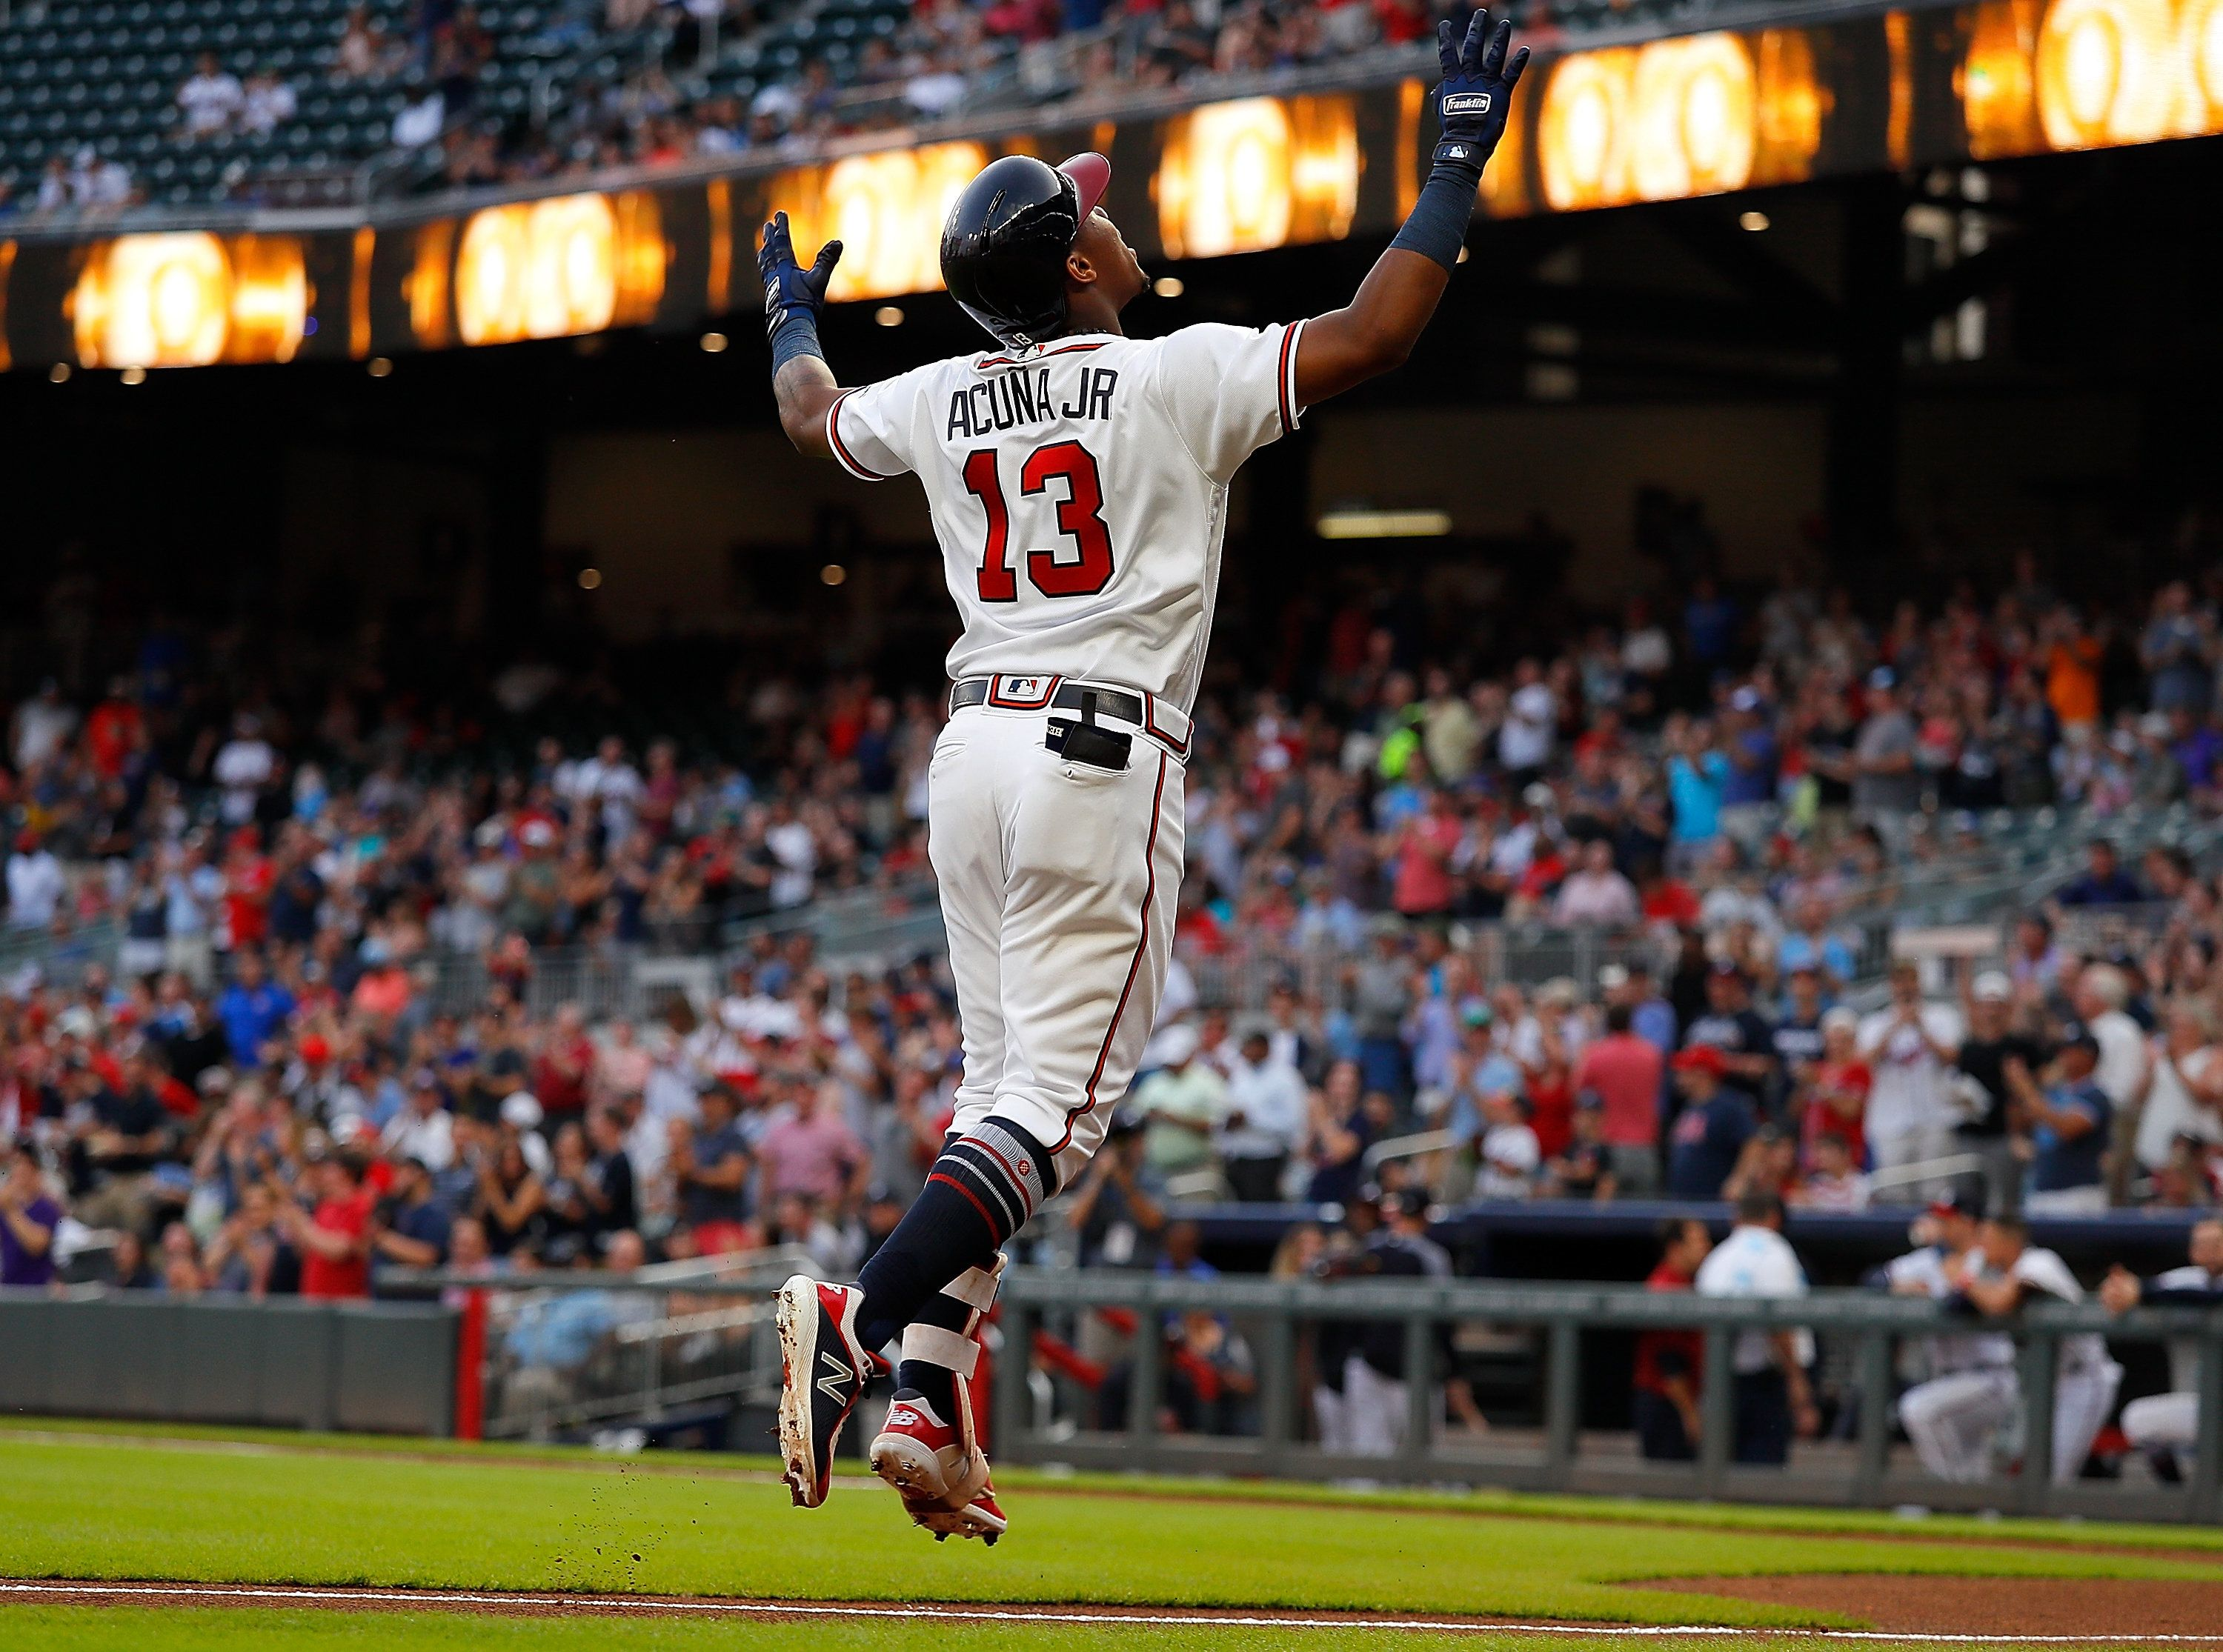 ATLANTA, GA - AUGUST 13:  Ronald Acuna Jr. #13 of the Atlanta Braves reacts after hitting a solo homer to lead off game two of a doubleheader against the Miami Marlins at SunTrust Park on August 13, 2018 in Atlanta, Georgia.  (Photo by Kevin C. Cox/Getty Images)